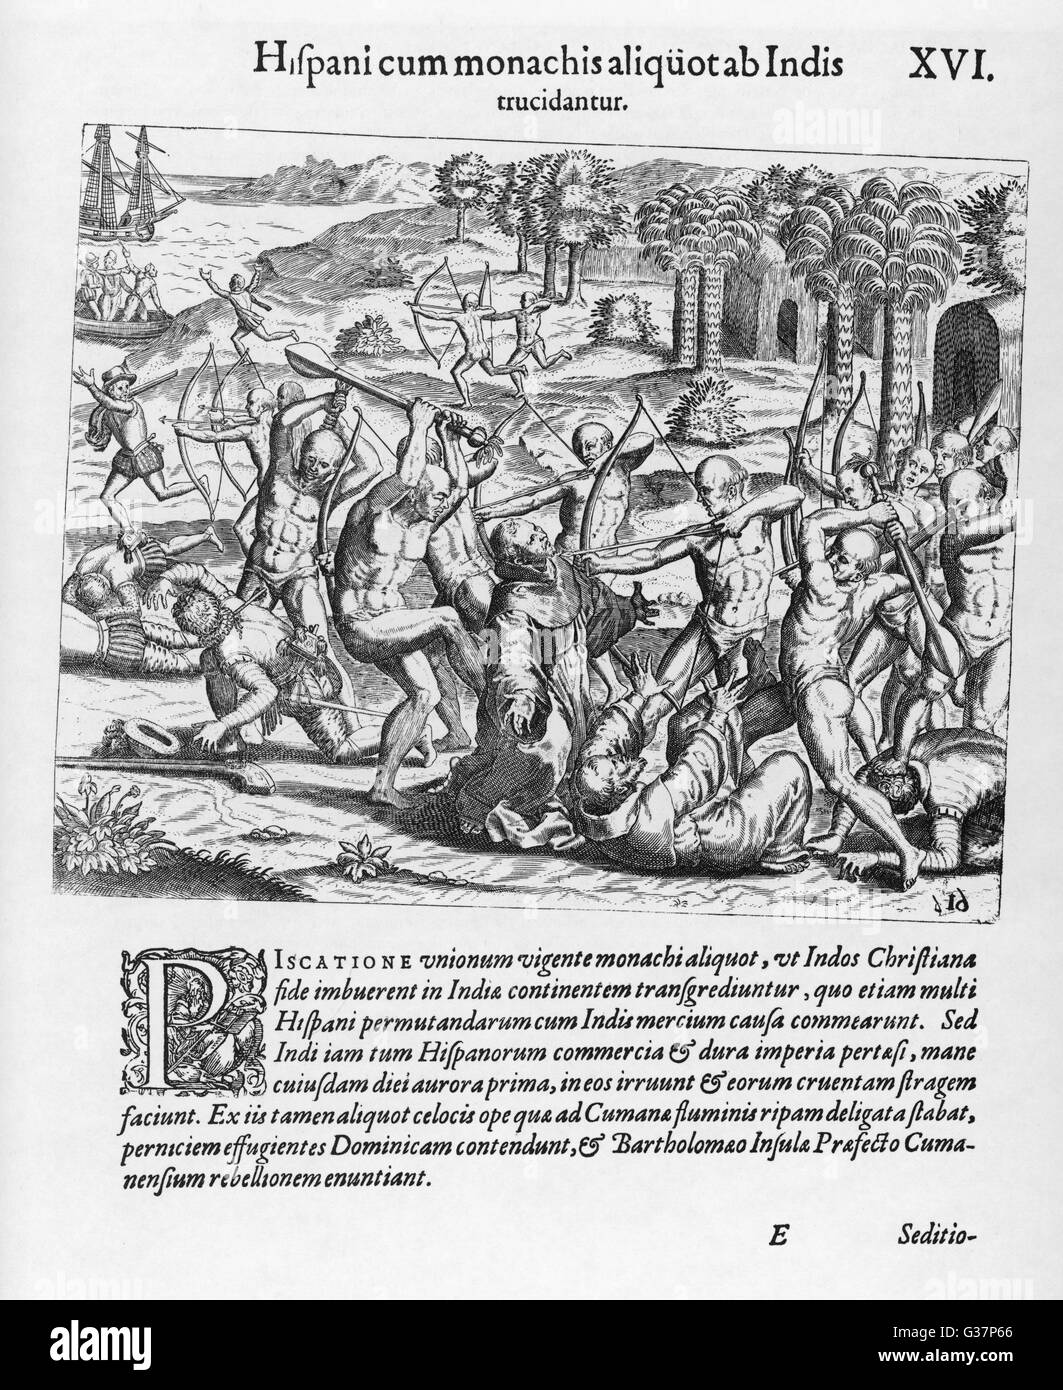 Angered by Spanish intrusion on their lives, their greed and harshness, the natives of Cumana turn on them and slaughter - Stock Image